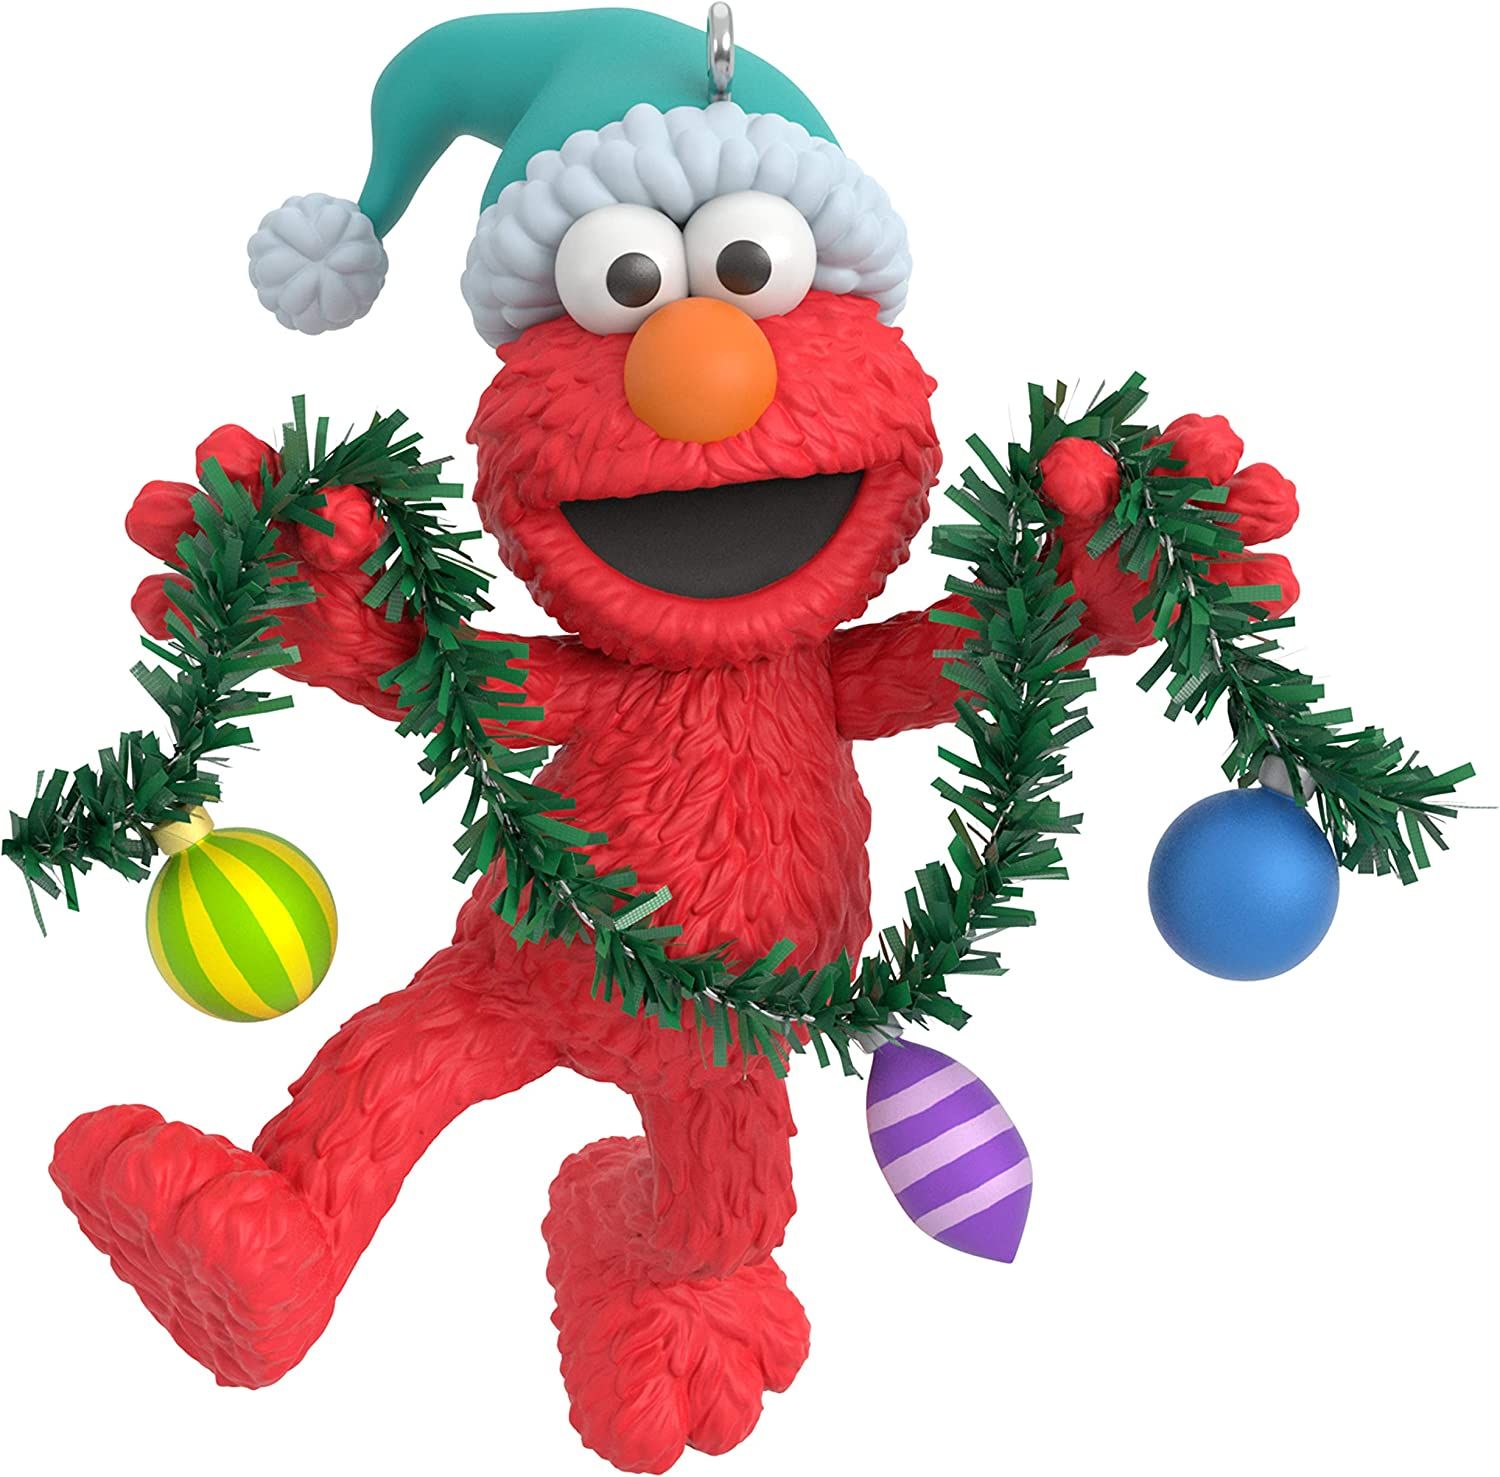 Sesame Street Christmas Special 2020 Amazon.com: Hallmark Keepsake Christmas Ornament 2020, Sesame